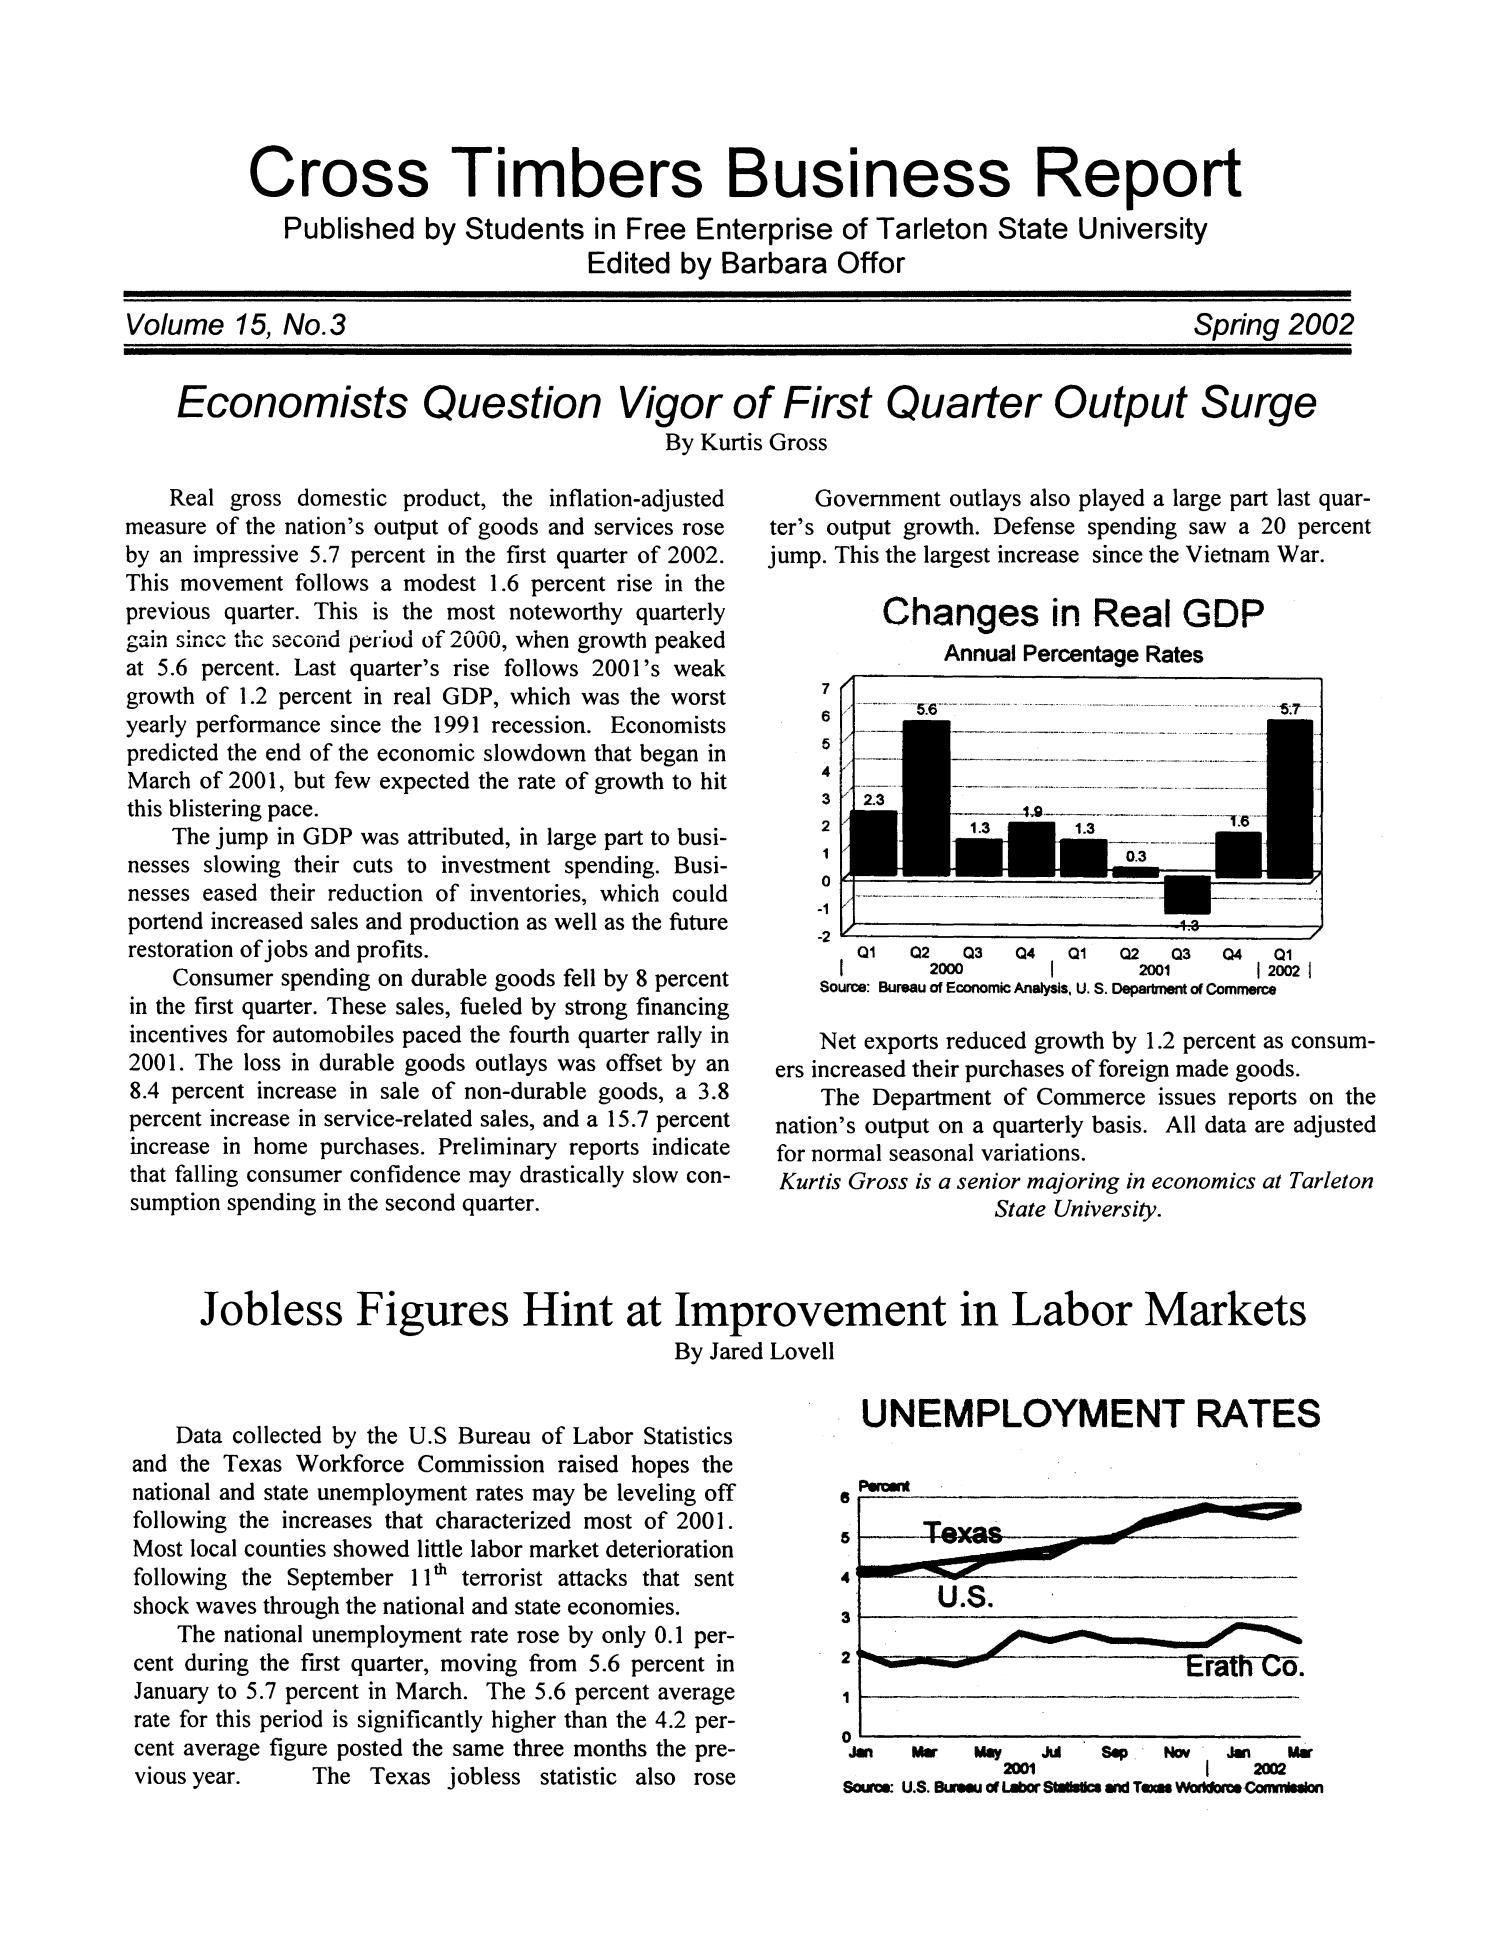 Cross Timbers Business Report, Volume 15, Number 3, Spring 2002                                                                                                      1